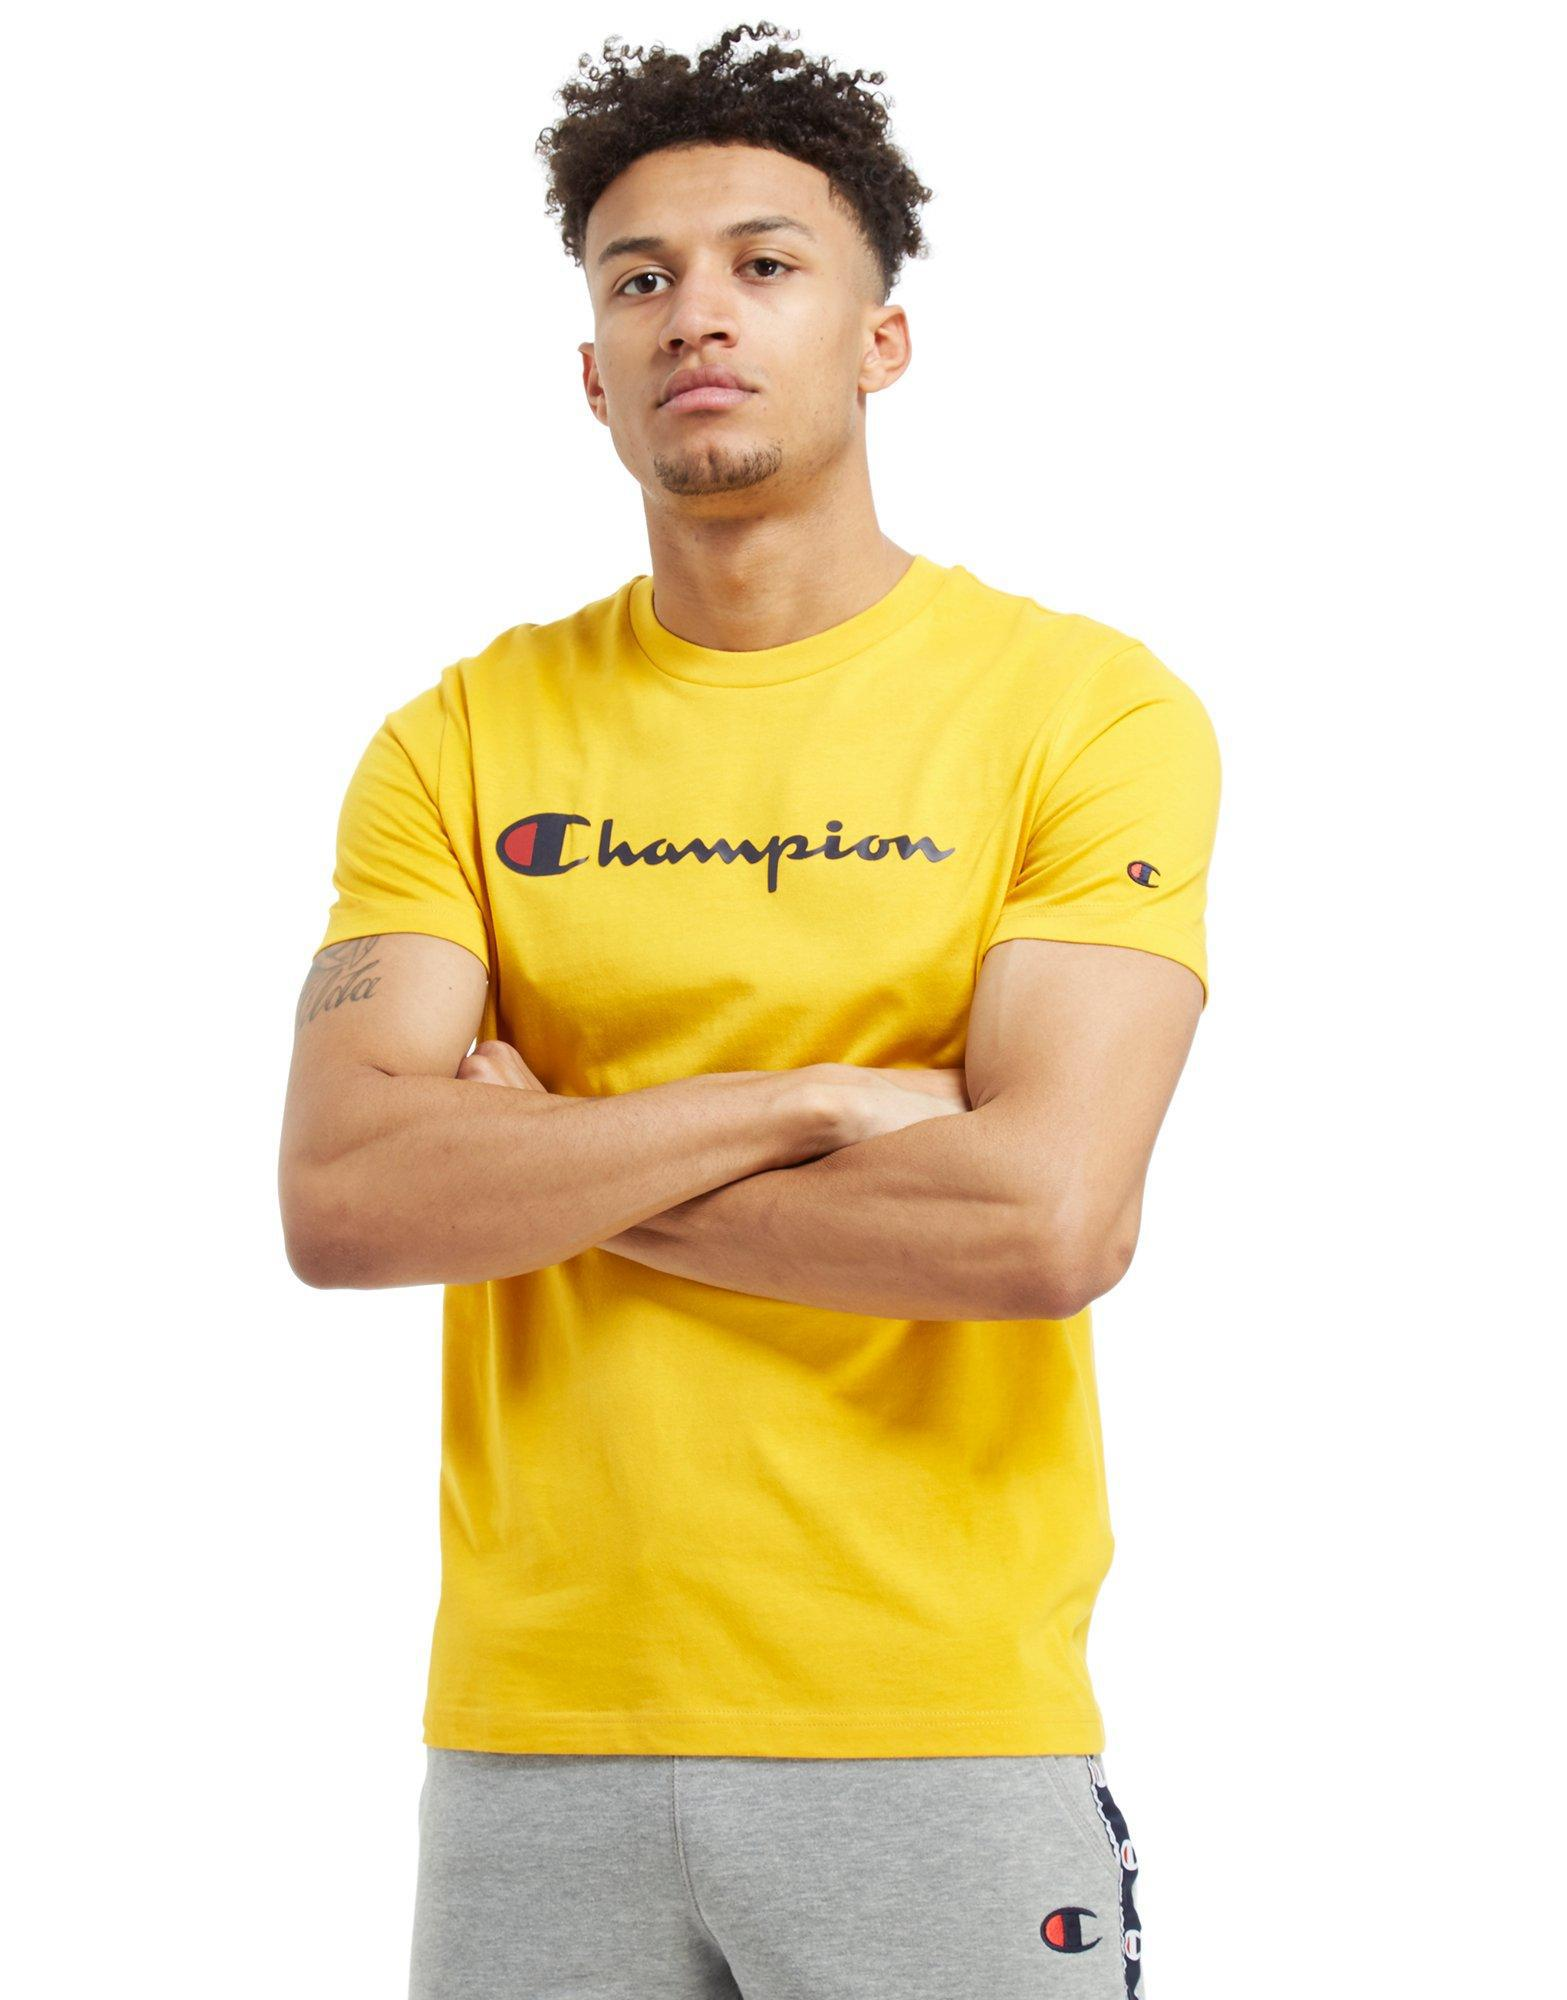 Lyst - Champion Core Script T-shirt in Yellow for Men f2a23a31be49